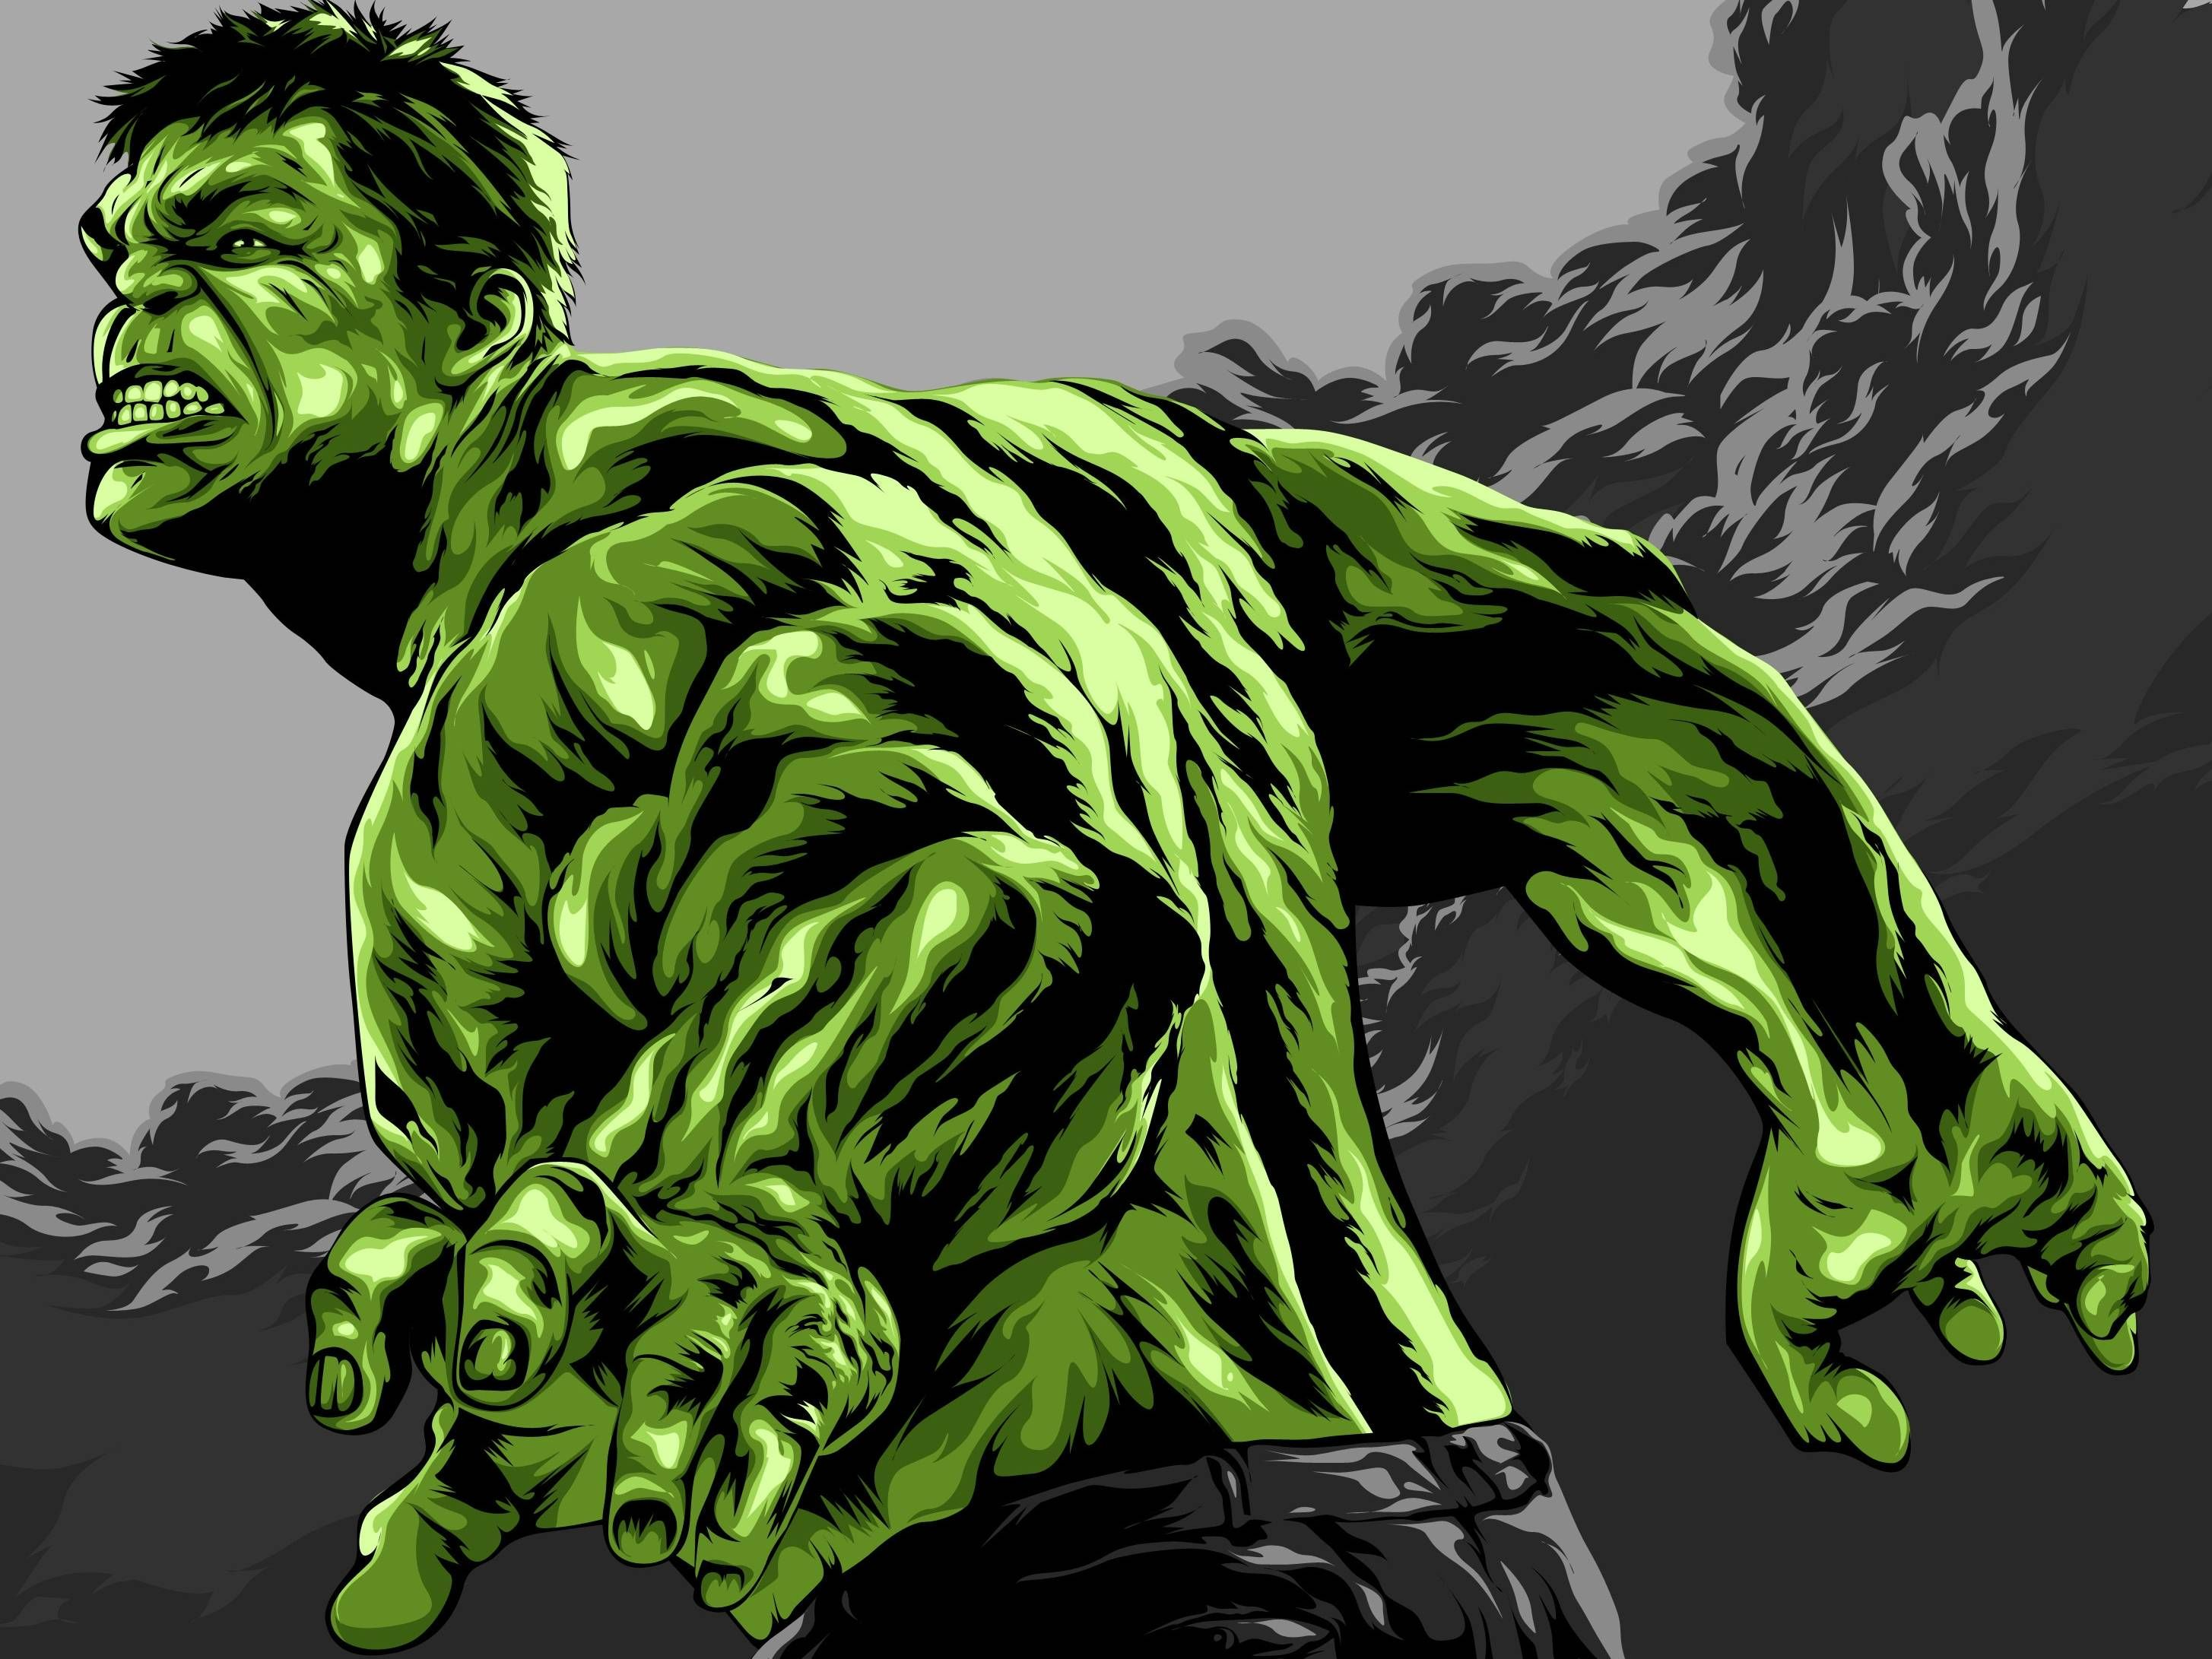 Hulk Wallpapers Wallpaper Infinity war Pinterest Wallpaper